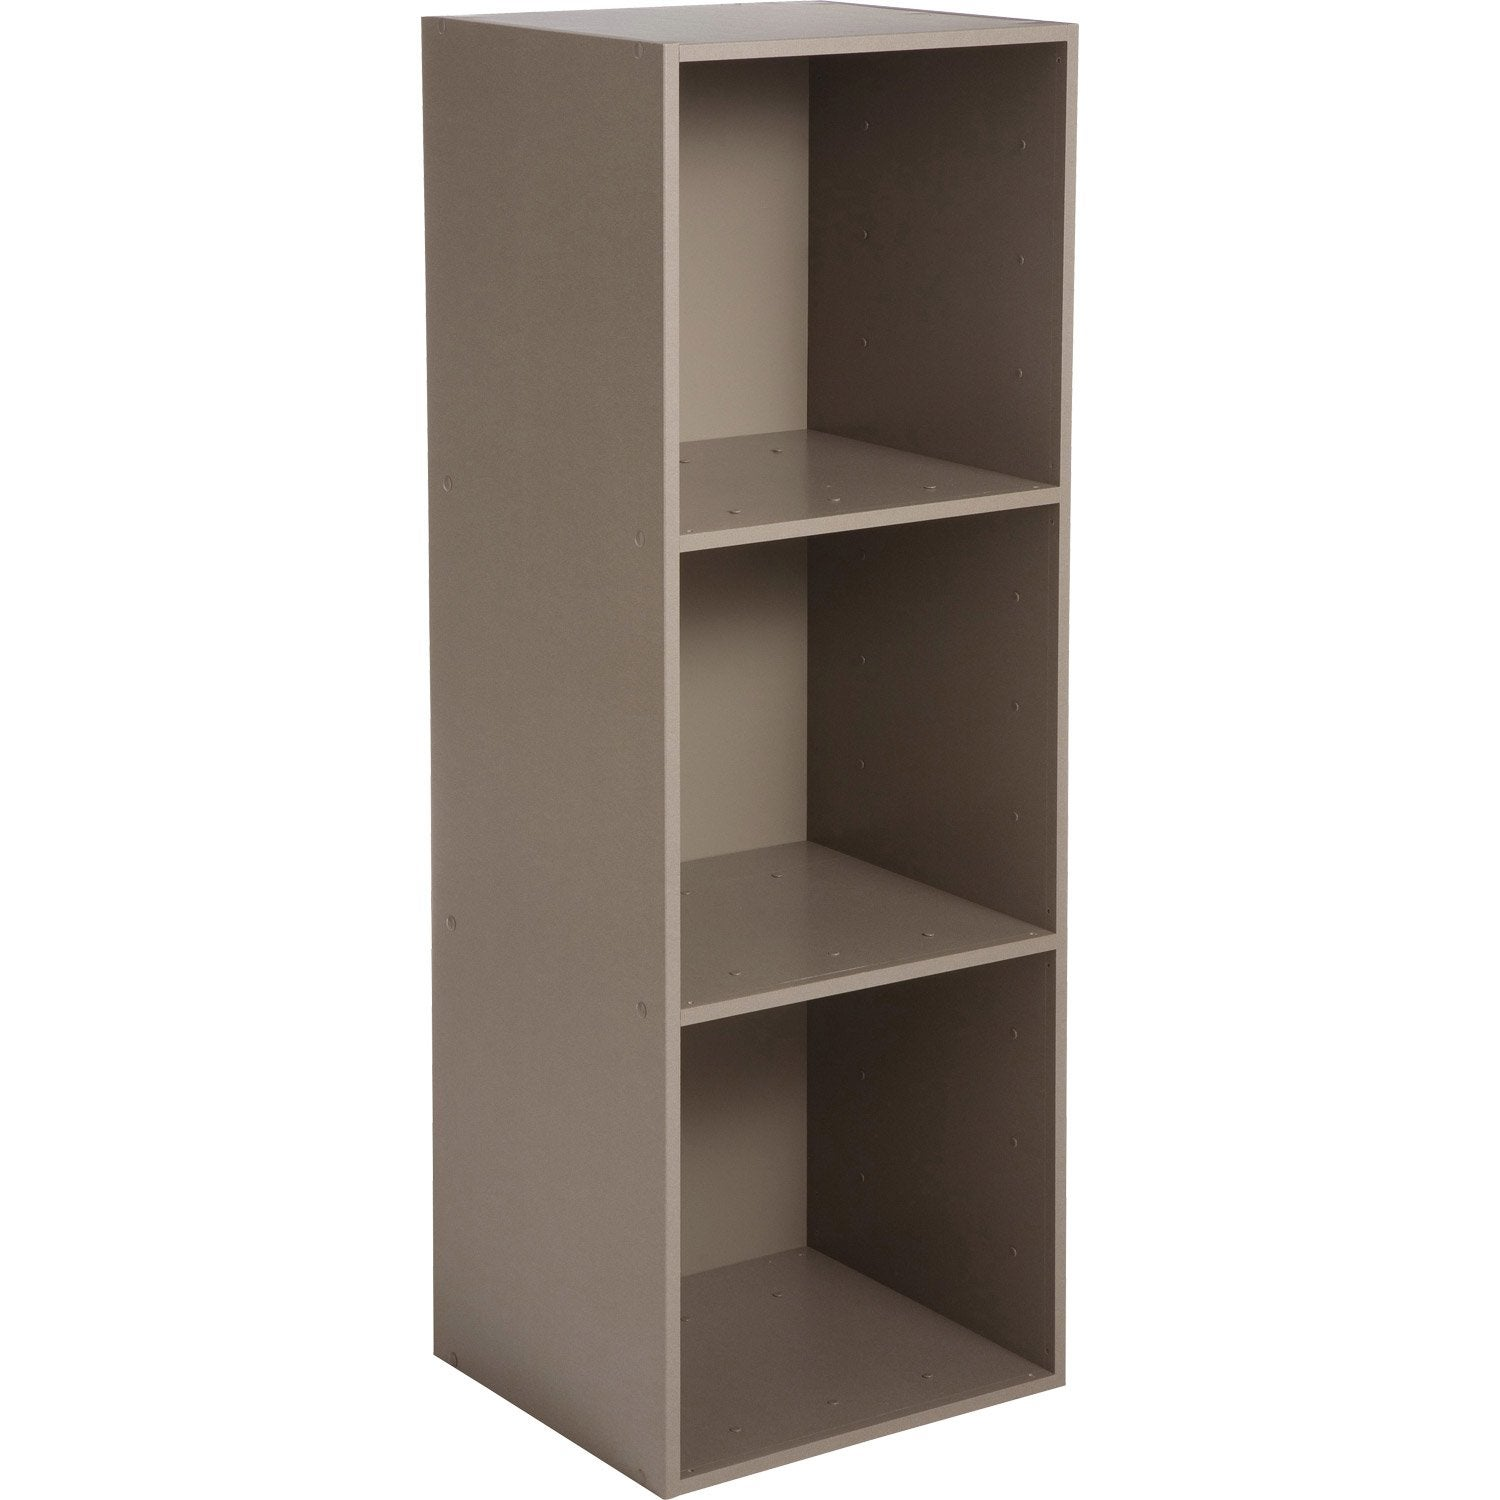 Etag re 3 cases multikaz taupe x x cm leroy merlin - Leroy merlin etagere bois ...